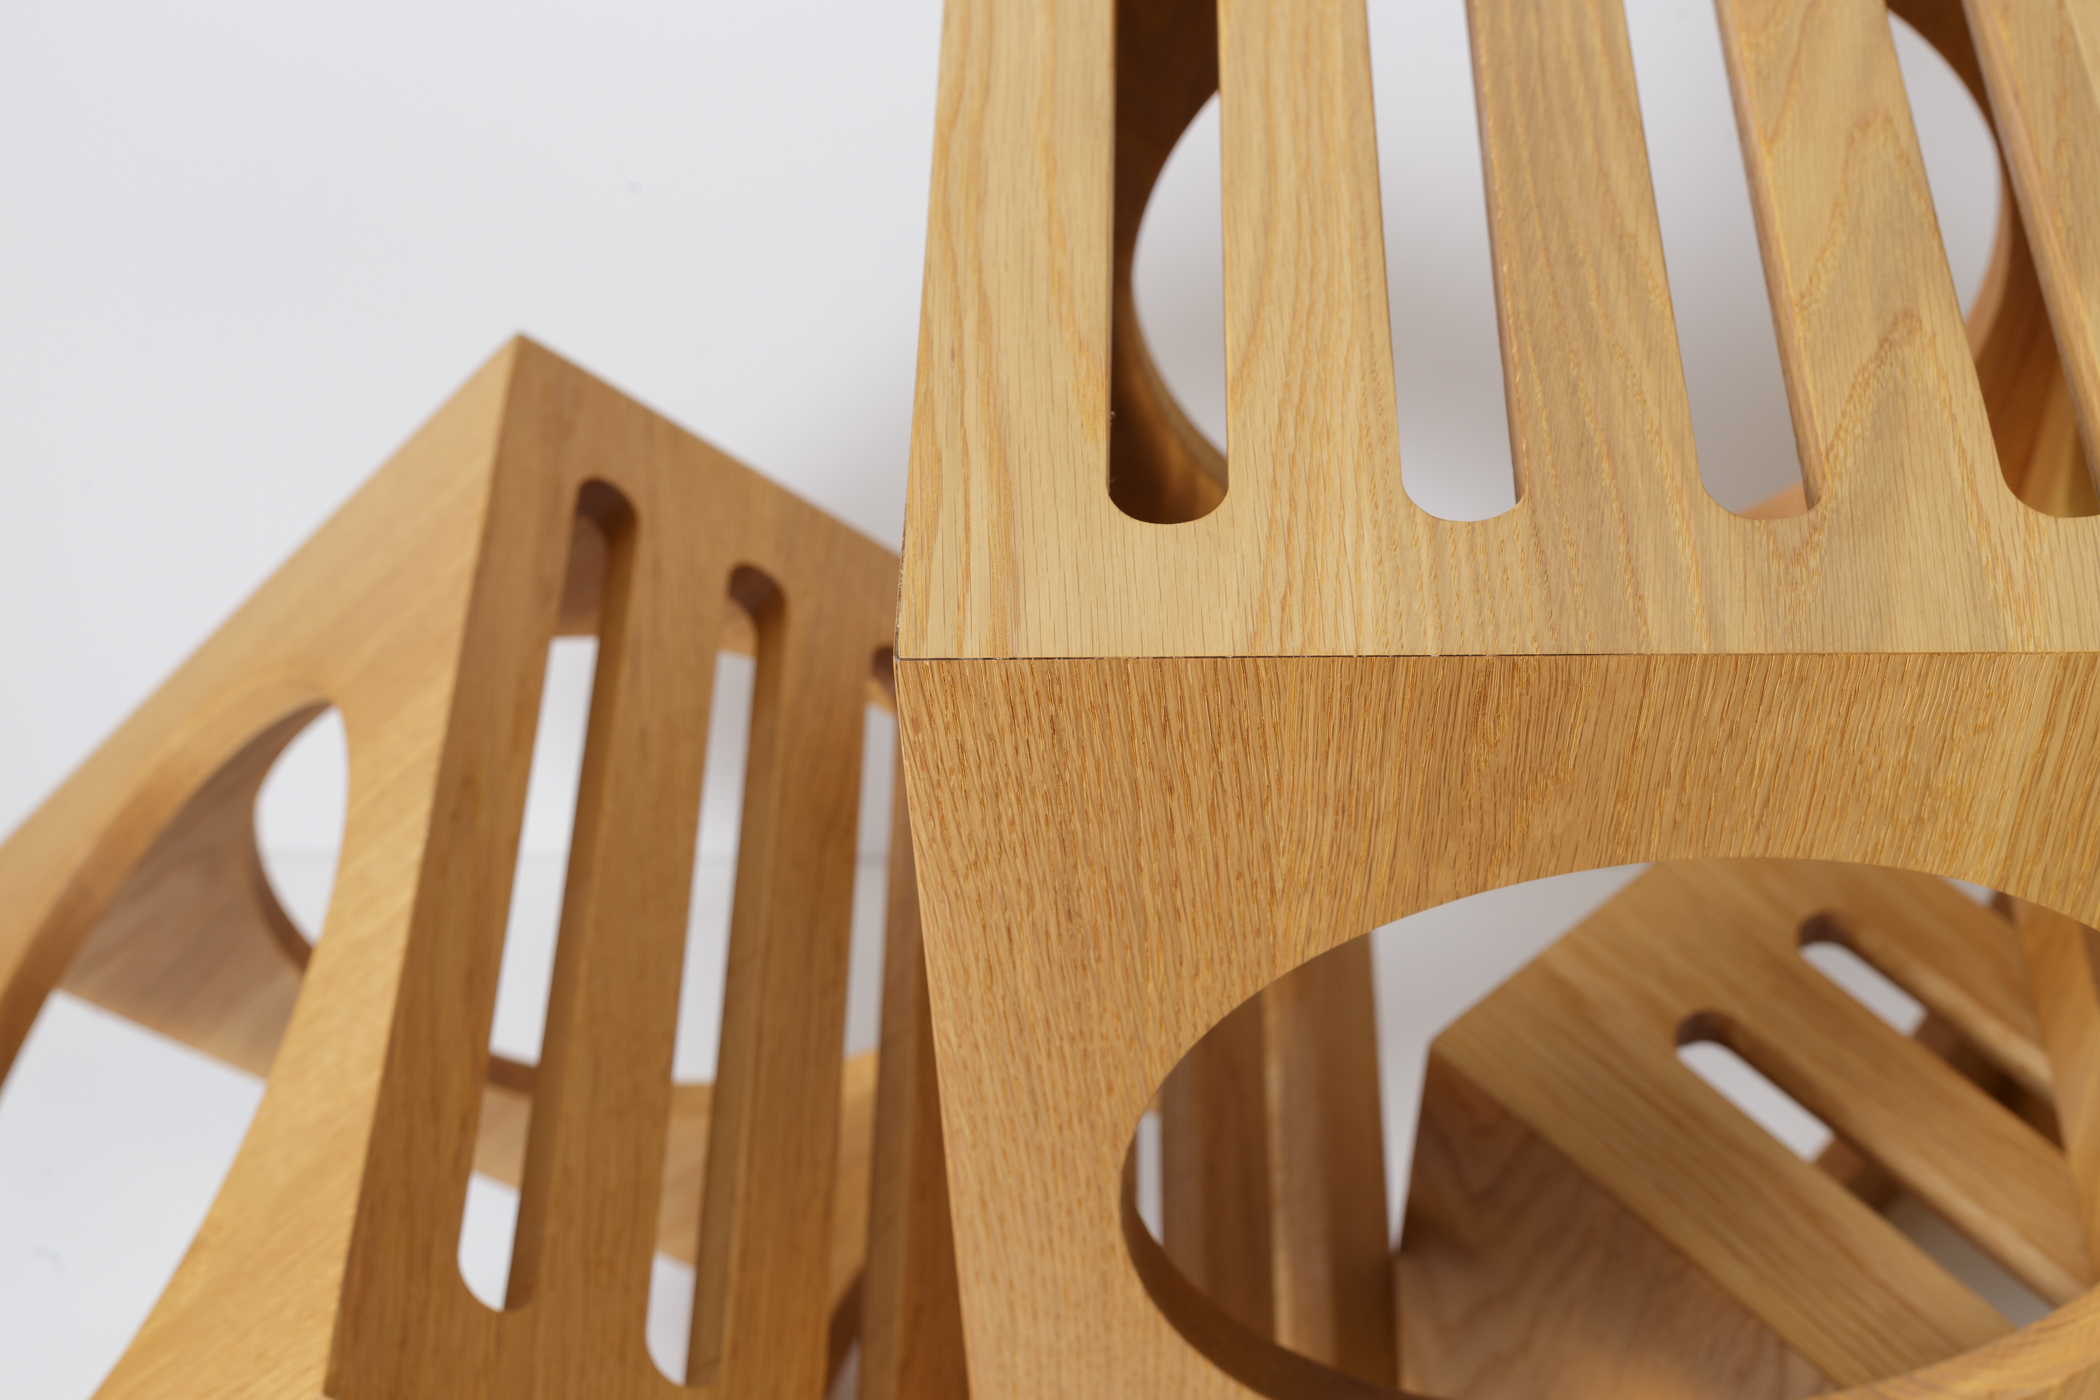 3 Blocks Solid Wood Nesting Tables or Stools Detail